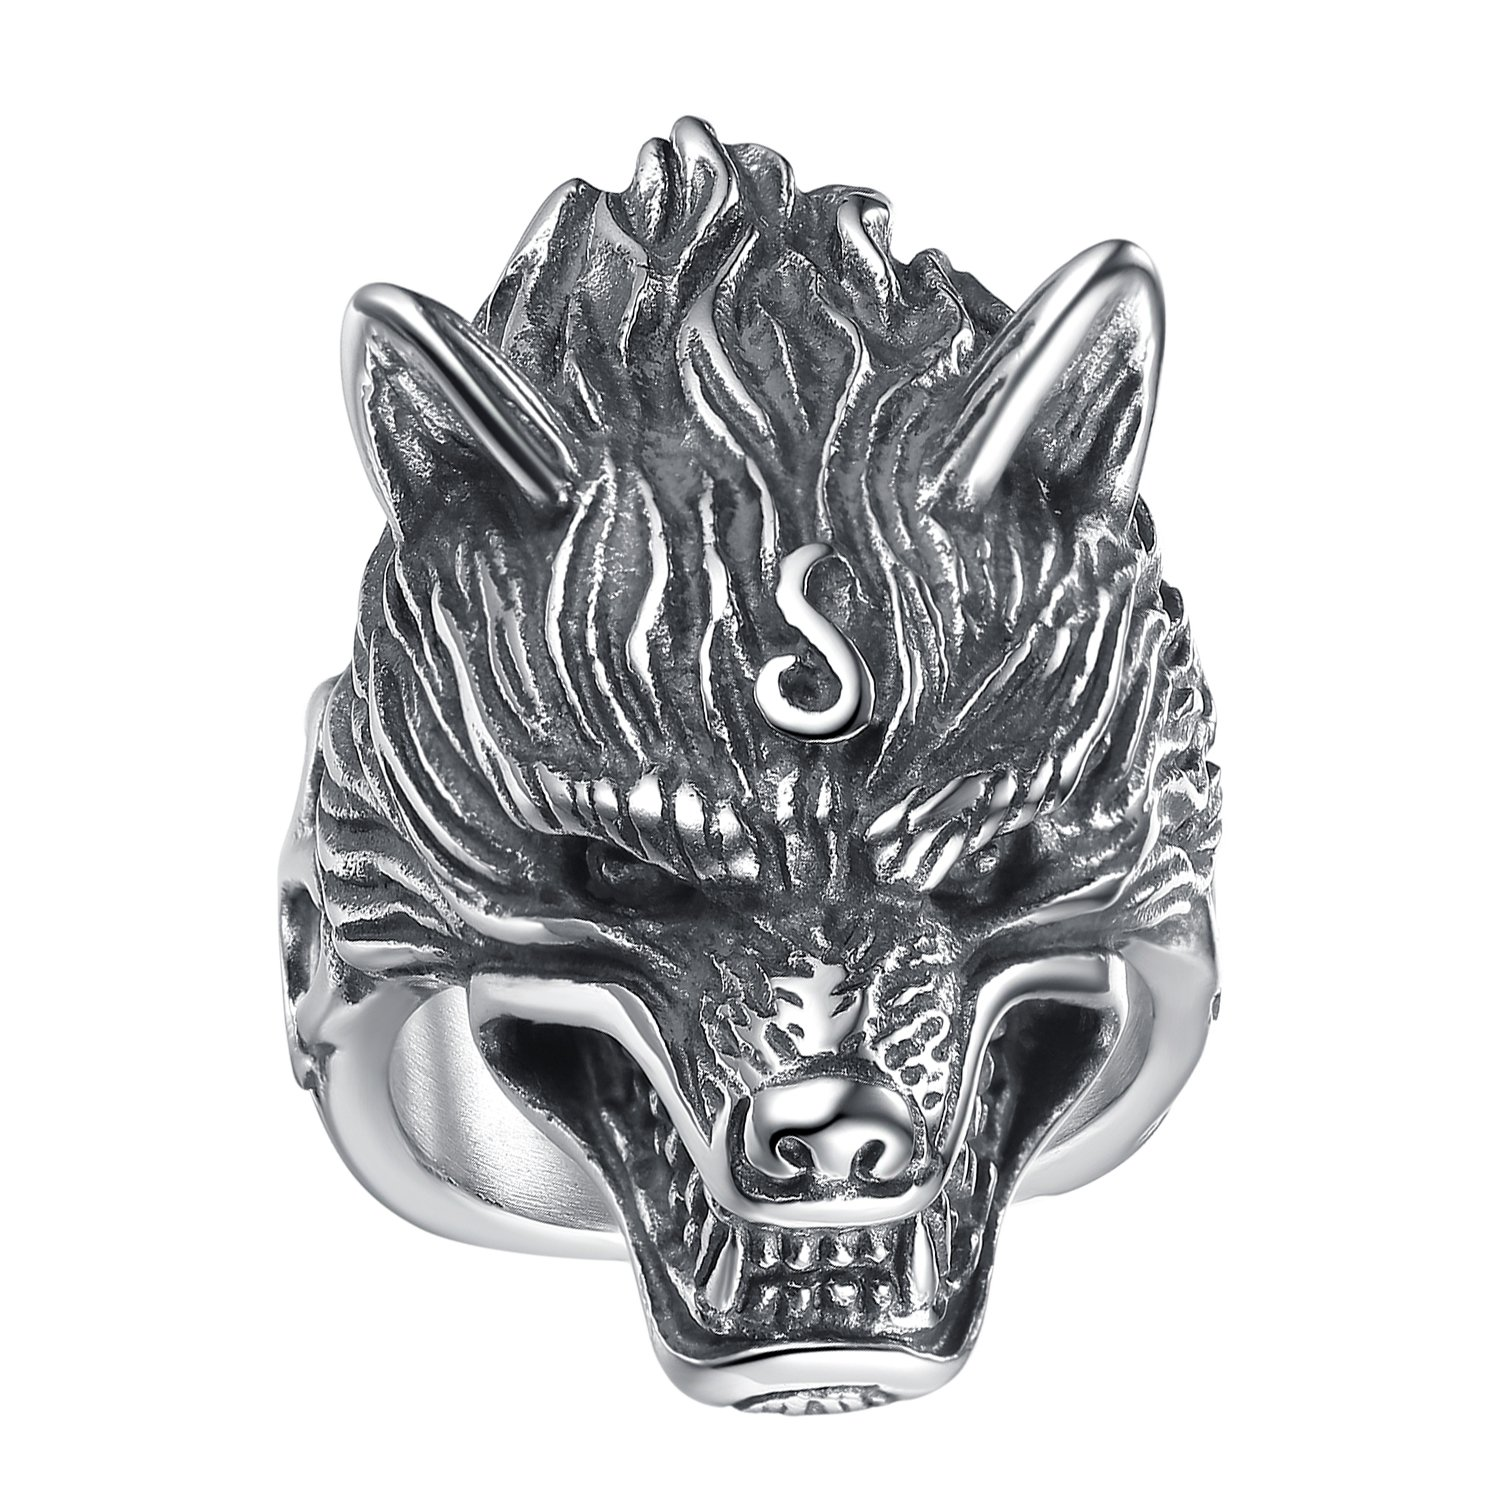 LineAve Men's Stainless Steel Wolf Biker Ring, Size 10, 8h5057s10 by LineAve (Image #4)